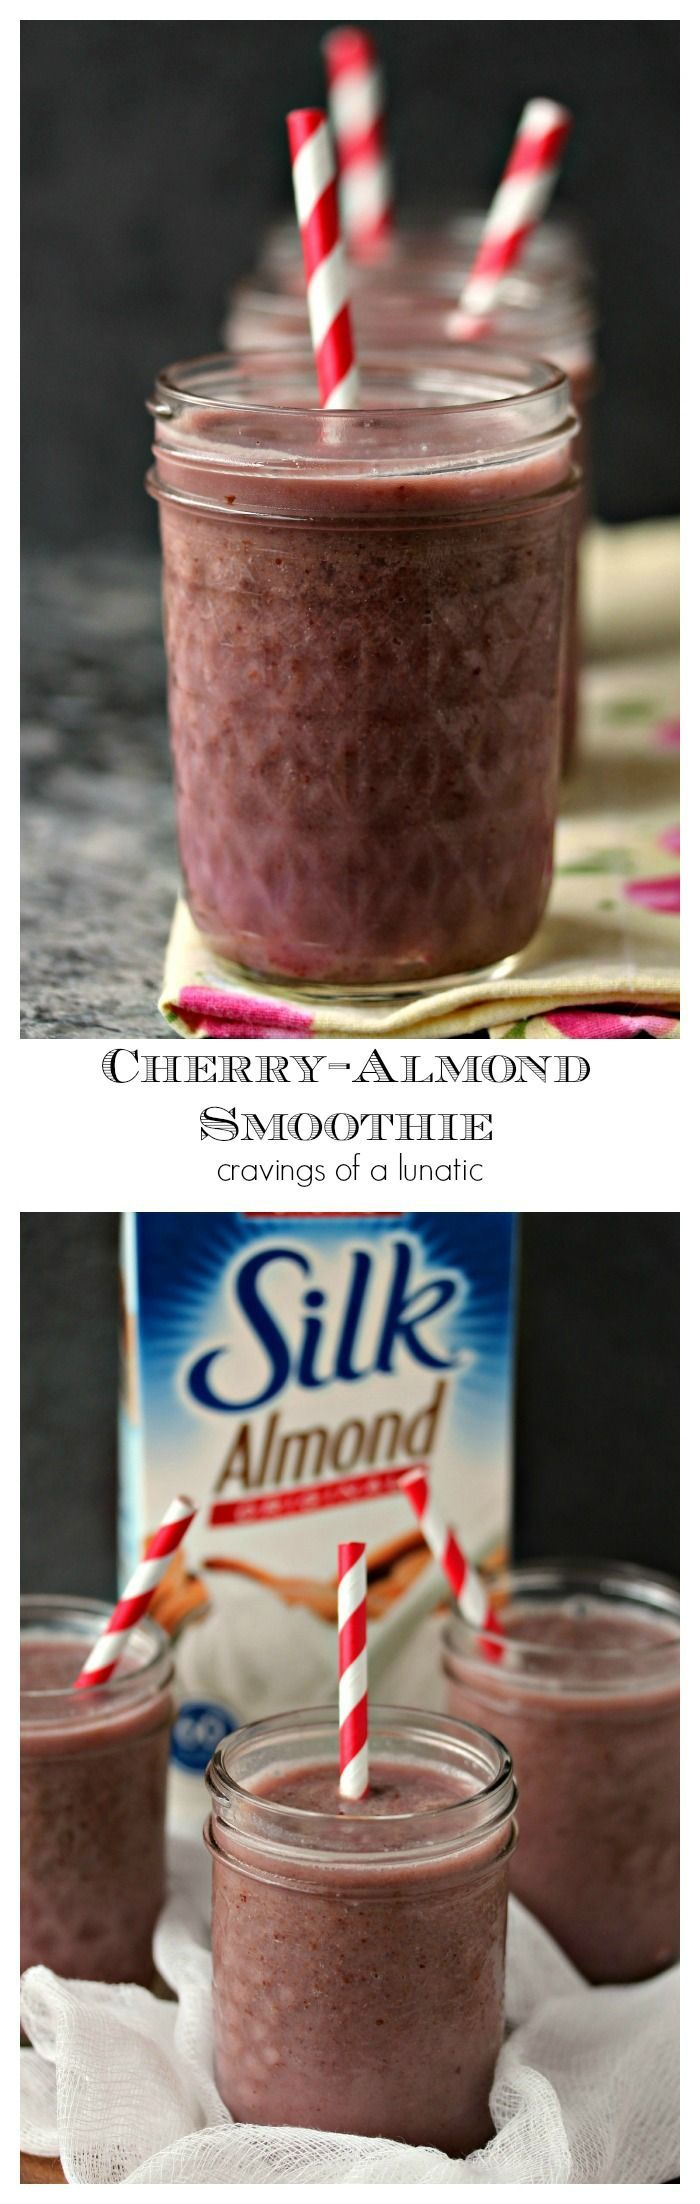 Cherry Almond Smoothie- Start your morning off right with a refreshing smoothie packed with cherries and almond milk. @lovemysilk